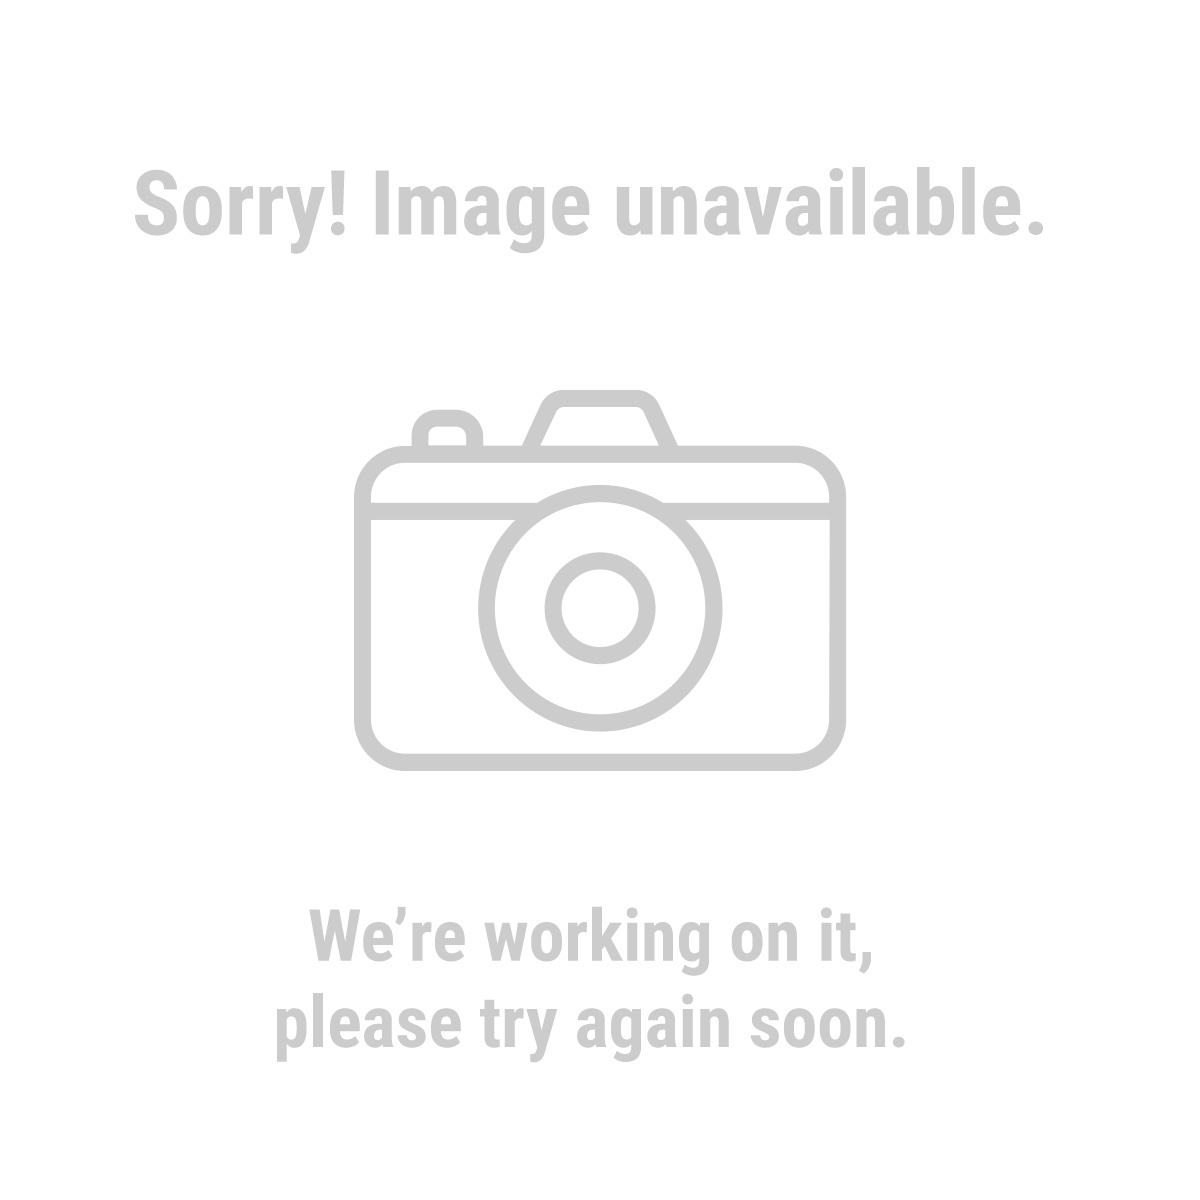 HFT 98472 4 Piece Ratchet Tie Downs